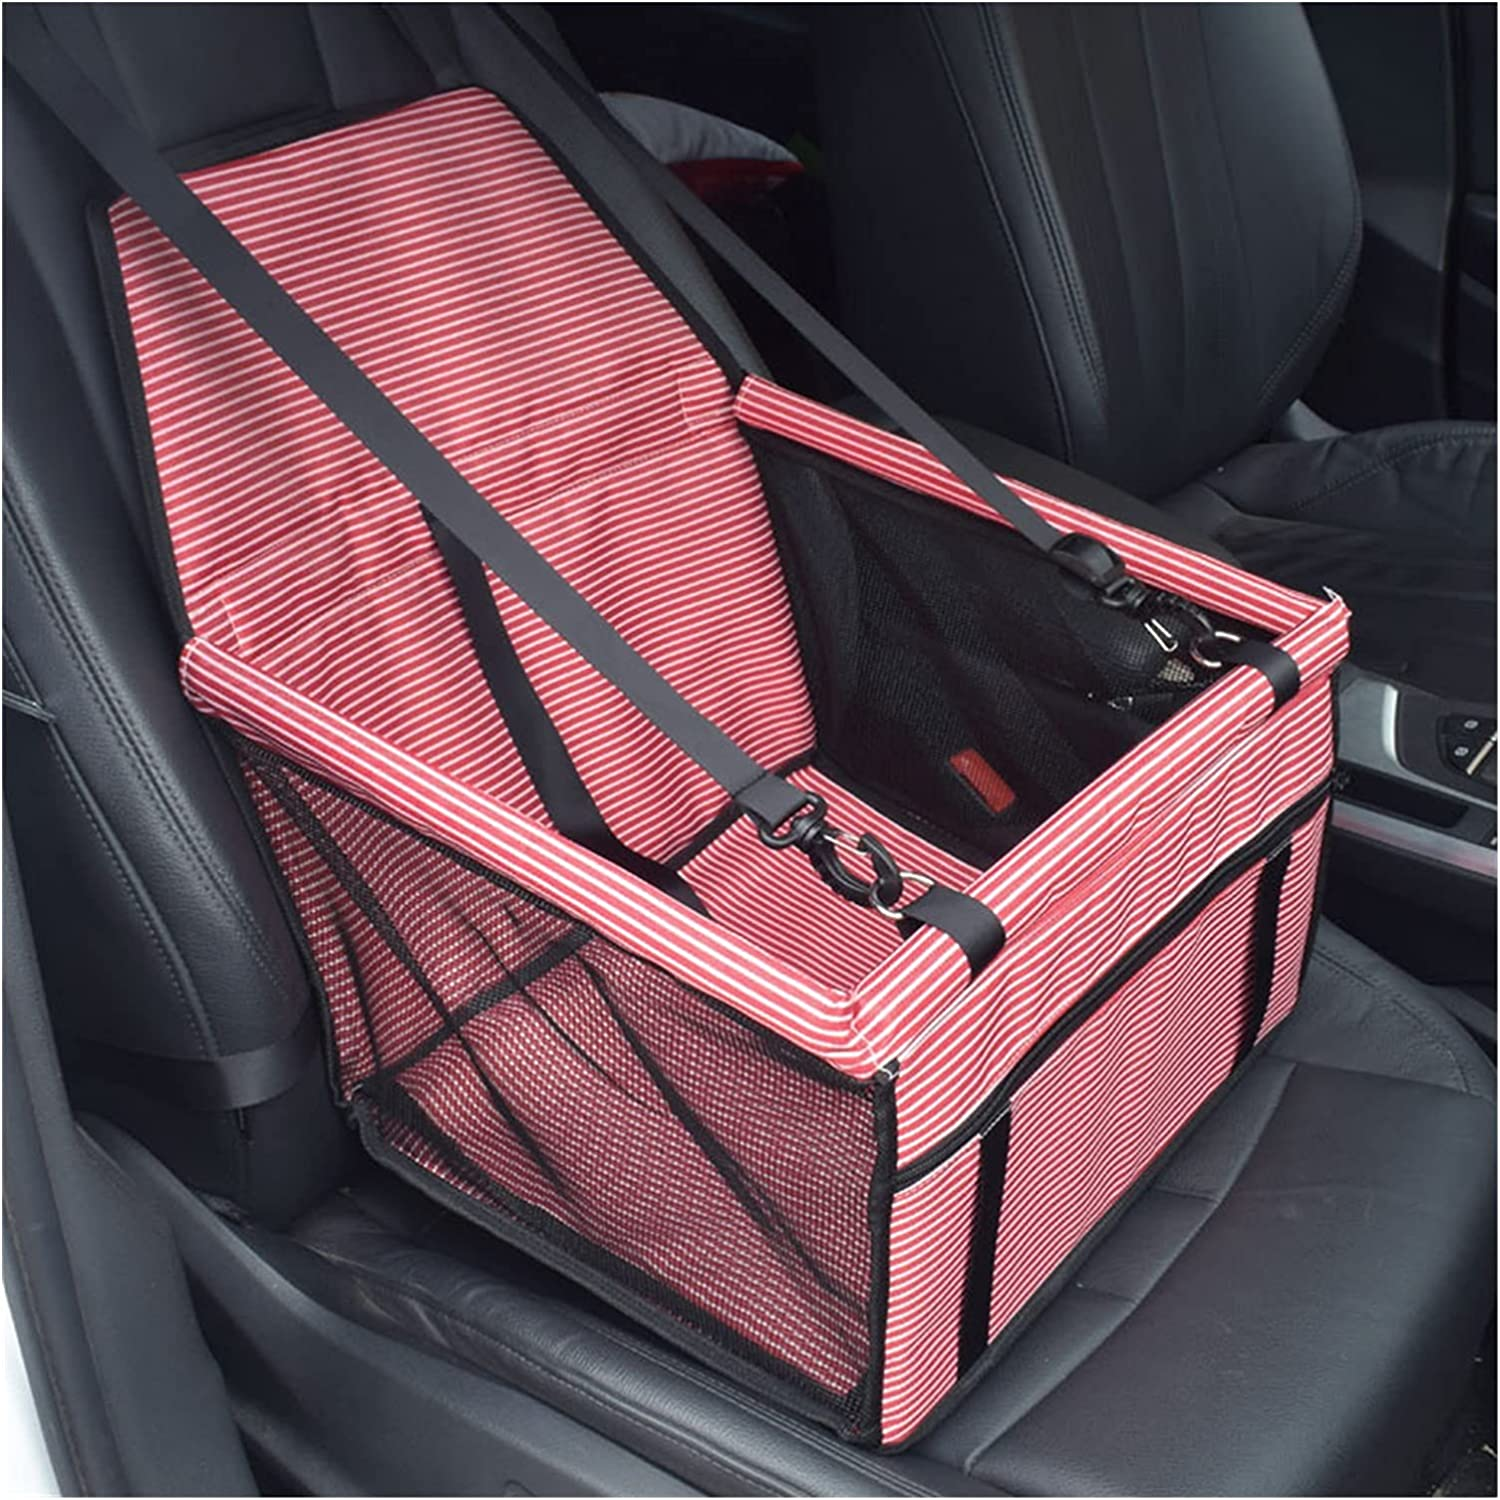 YENYWL Dog Car Seat New life Cover 2 Wa Pet Max 88% OFF 1 in Front